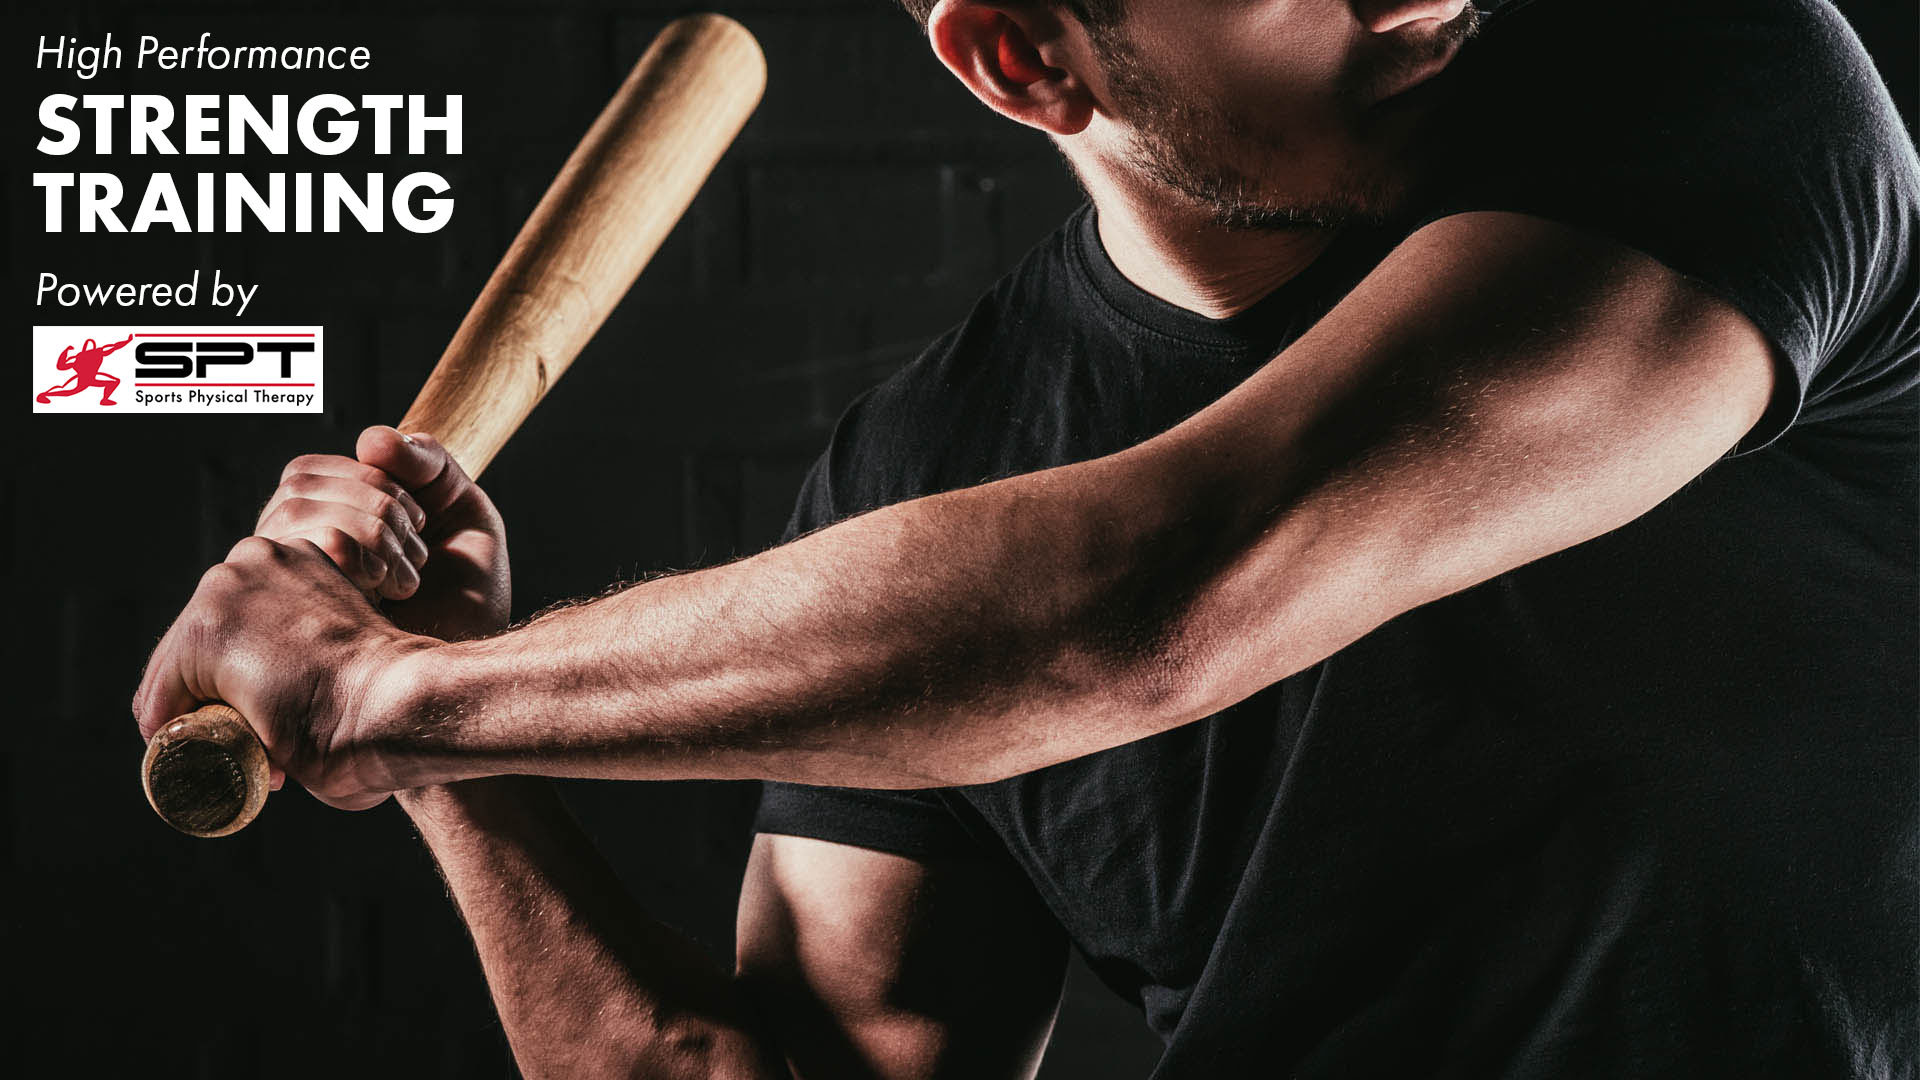 High Performance Strength Training powered by Sports Physical Therapy